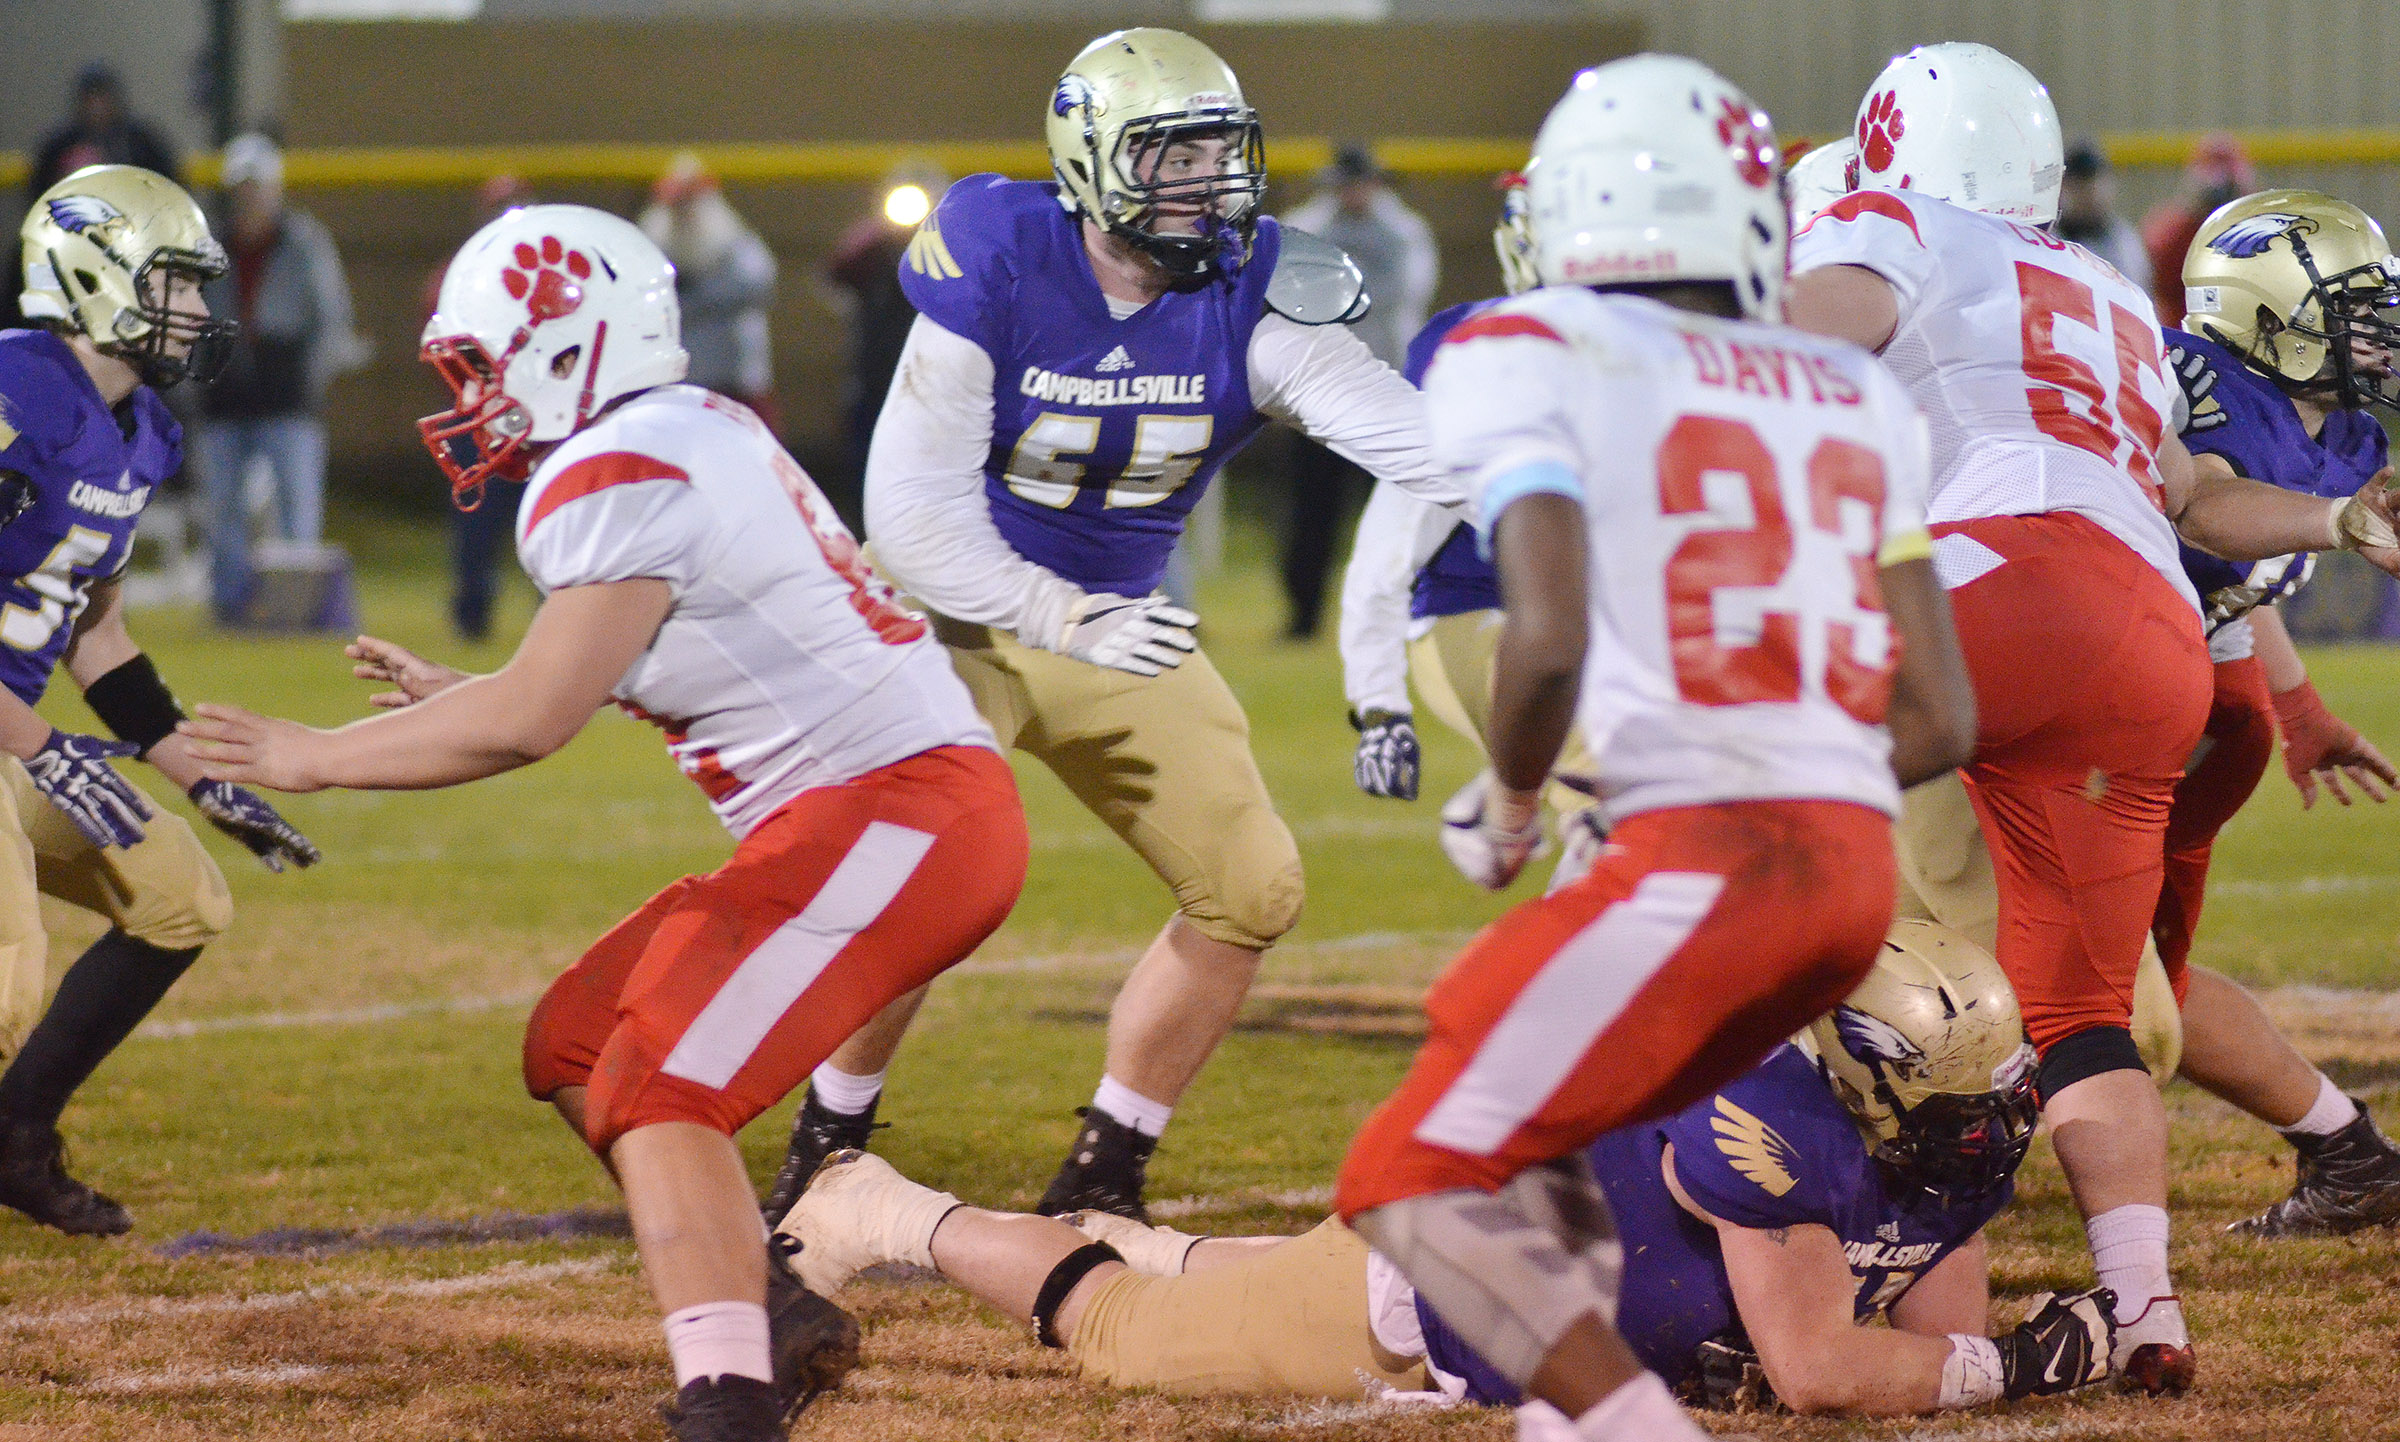 CHS junior Lane Bottoms, center, tackles.